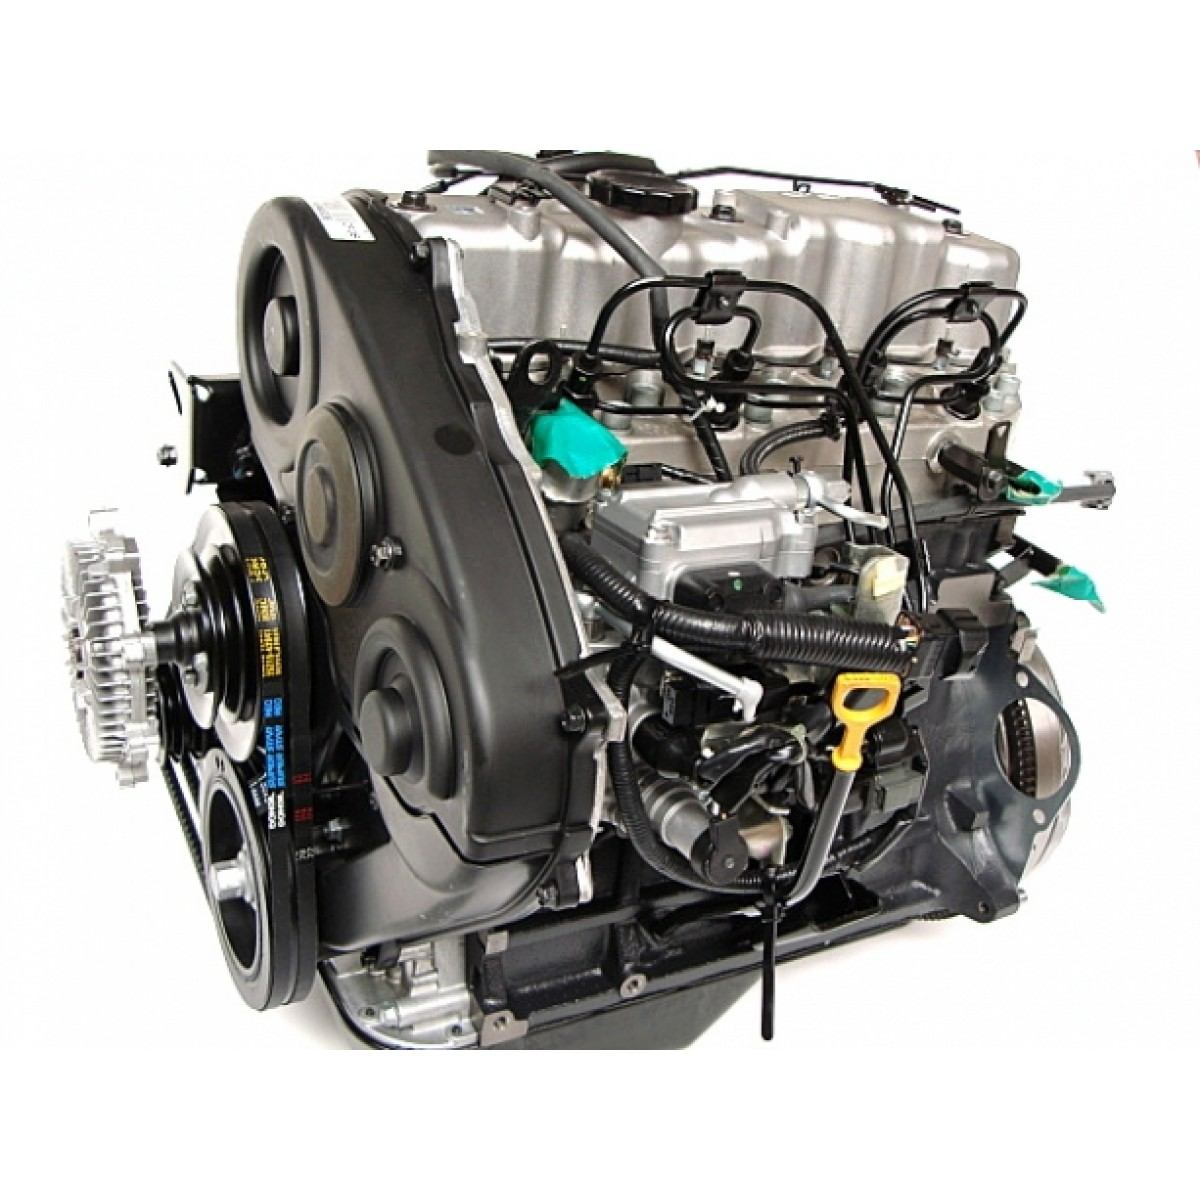 http://tv2engineandgearbox.co.za/wp-content/uploads/2018/04/engine_hyundai_h100-porter_2.5_td_d4bf_df39e_electronic_complete.jpg